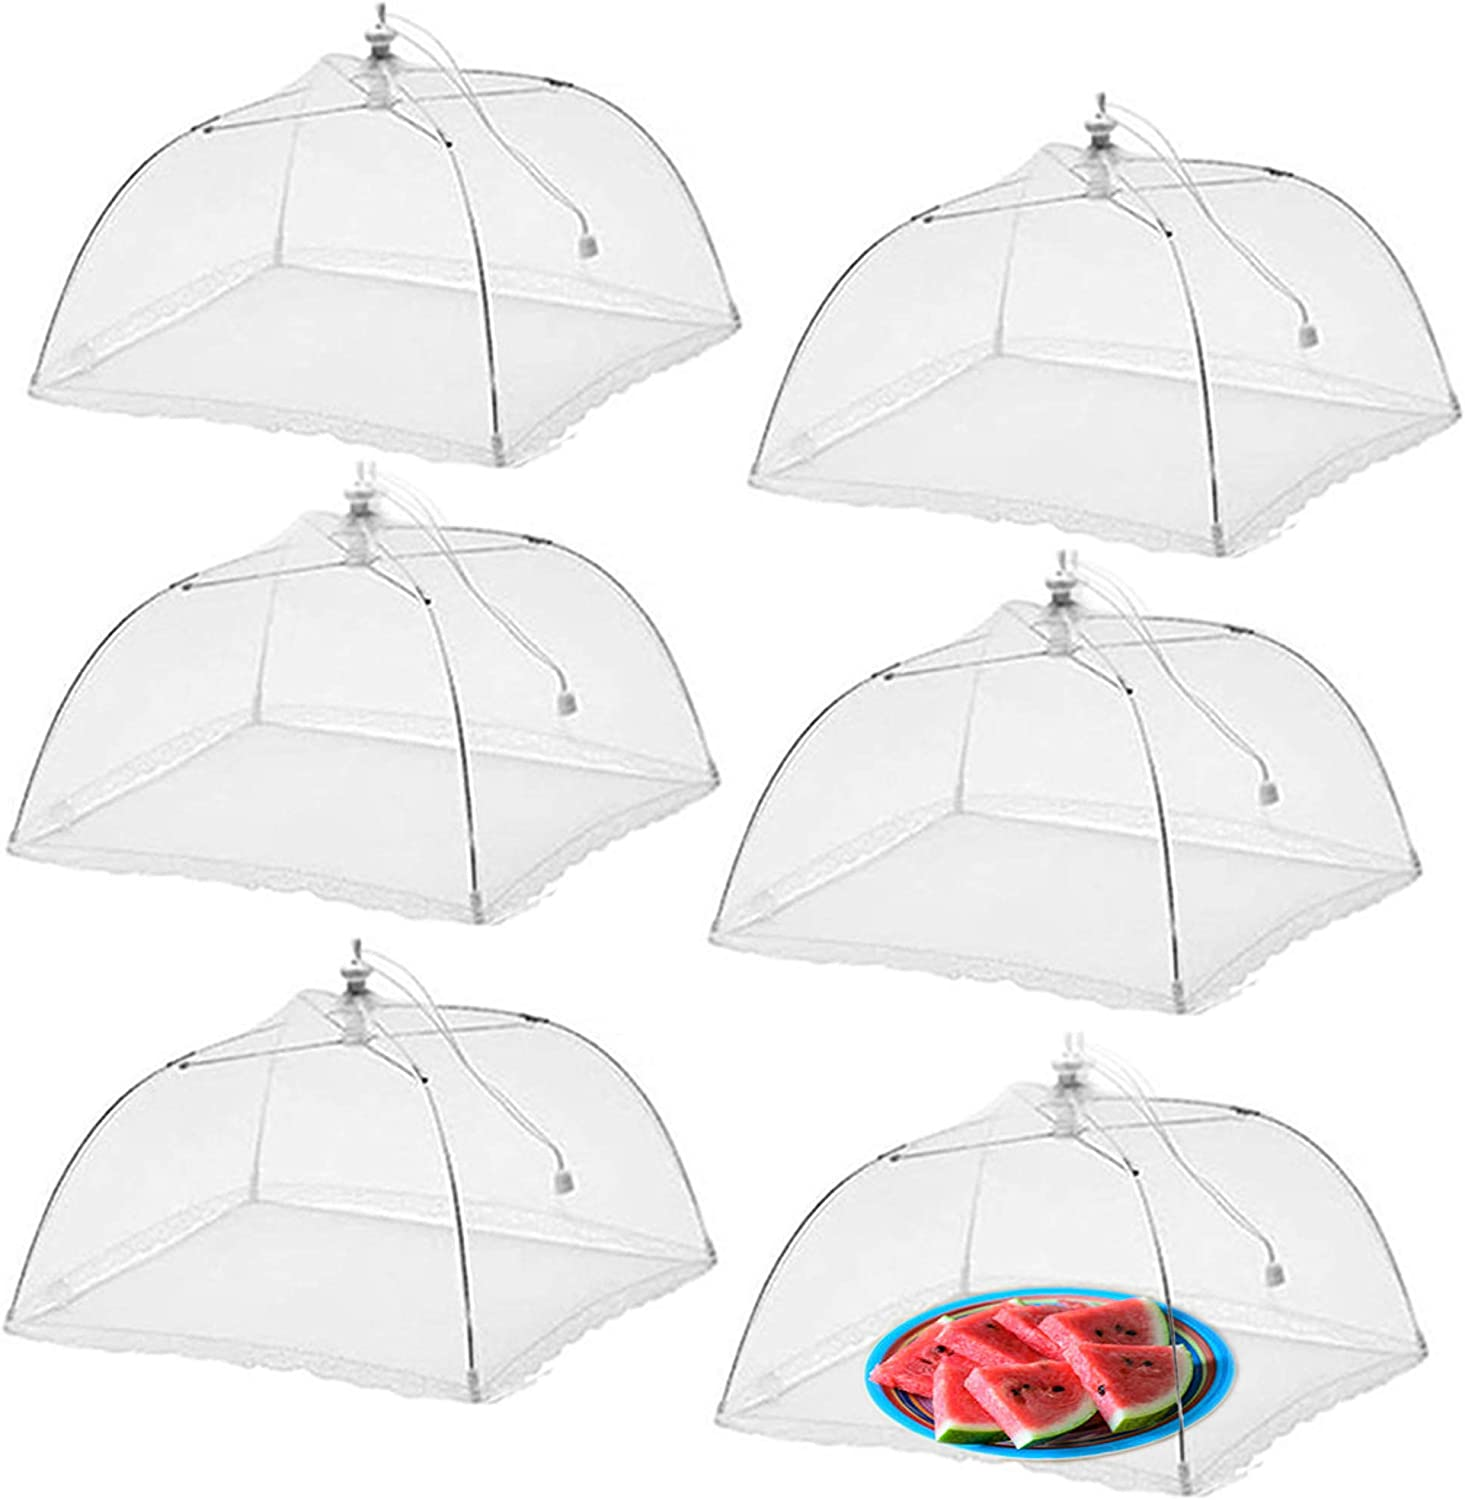 Simply Manufacturer OFFicial shop Genius Max 46% OFF 6 pack Large and Cov Food Mesh Tall Pop-Up 17x17